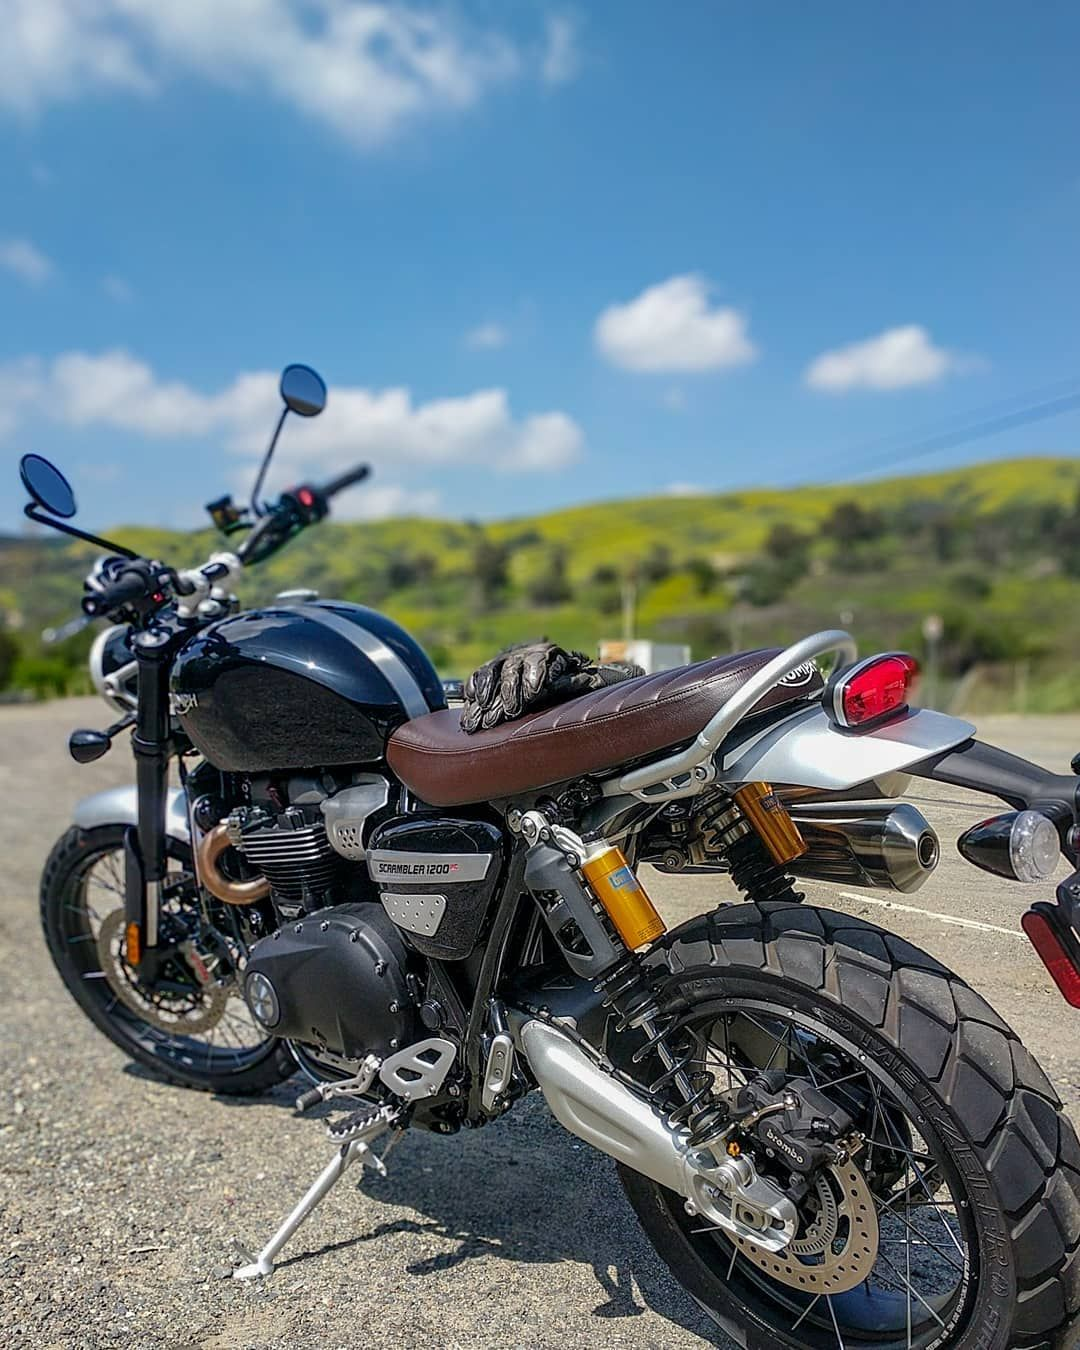 Tremendous This Is The Triumph Scrambler Xc The One Inch Lower Seat Cjindustries Chair Design For Home Cjindustriesco